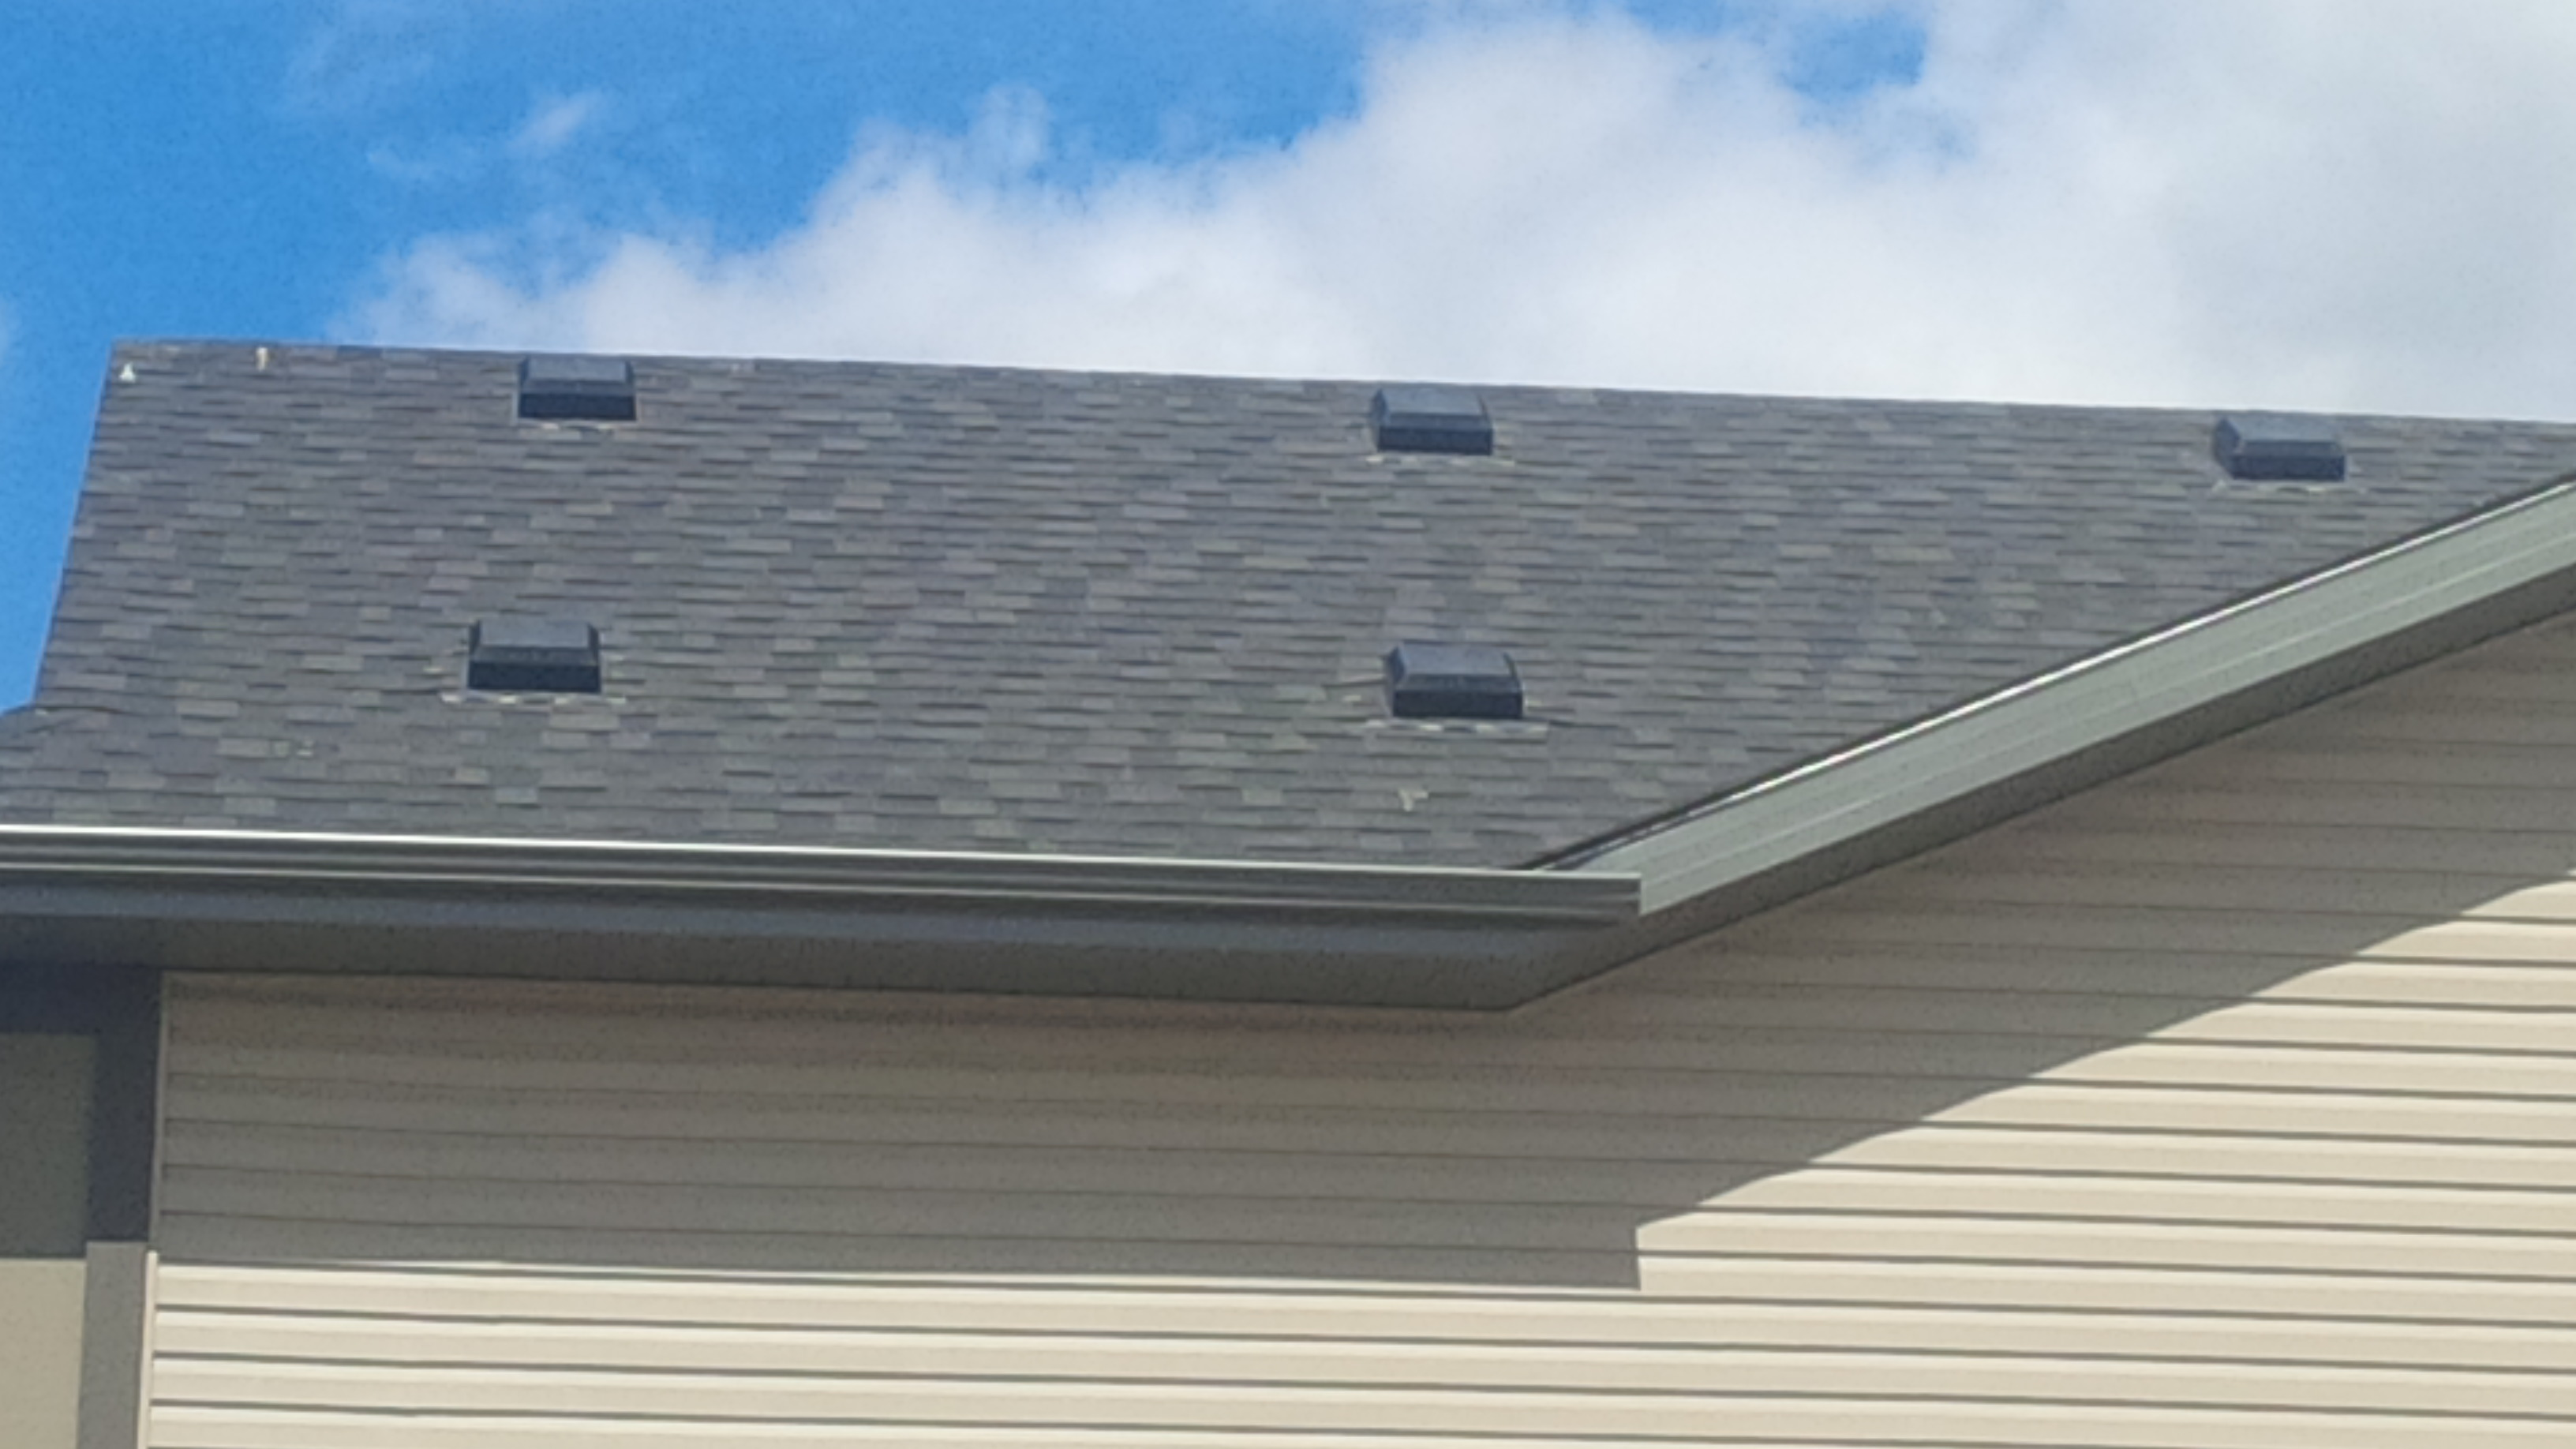 lower roof intake vents allow for Attic intake ventilation through the lower parts of the roof